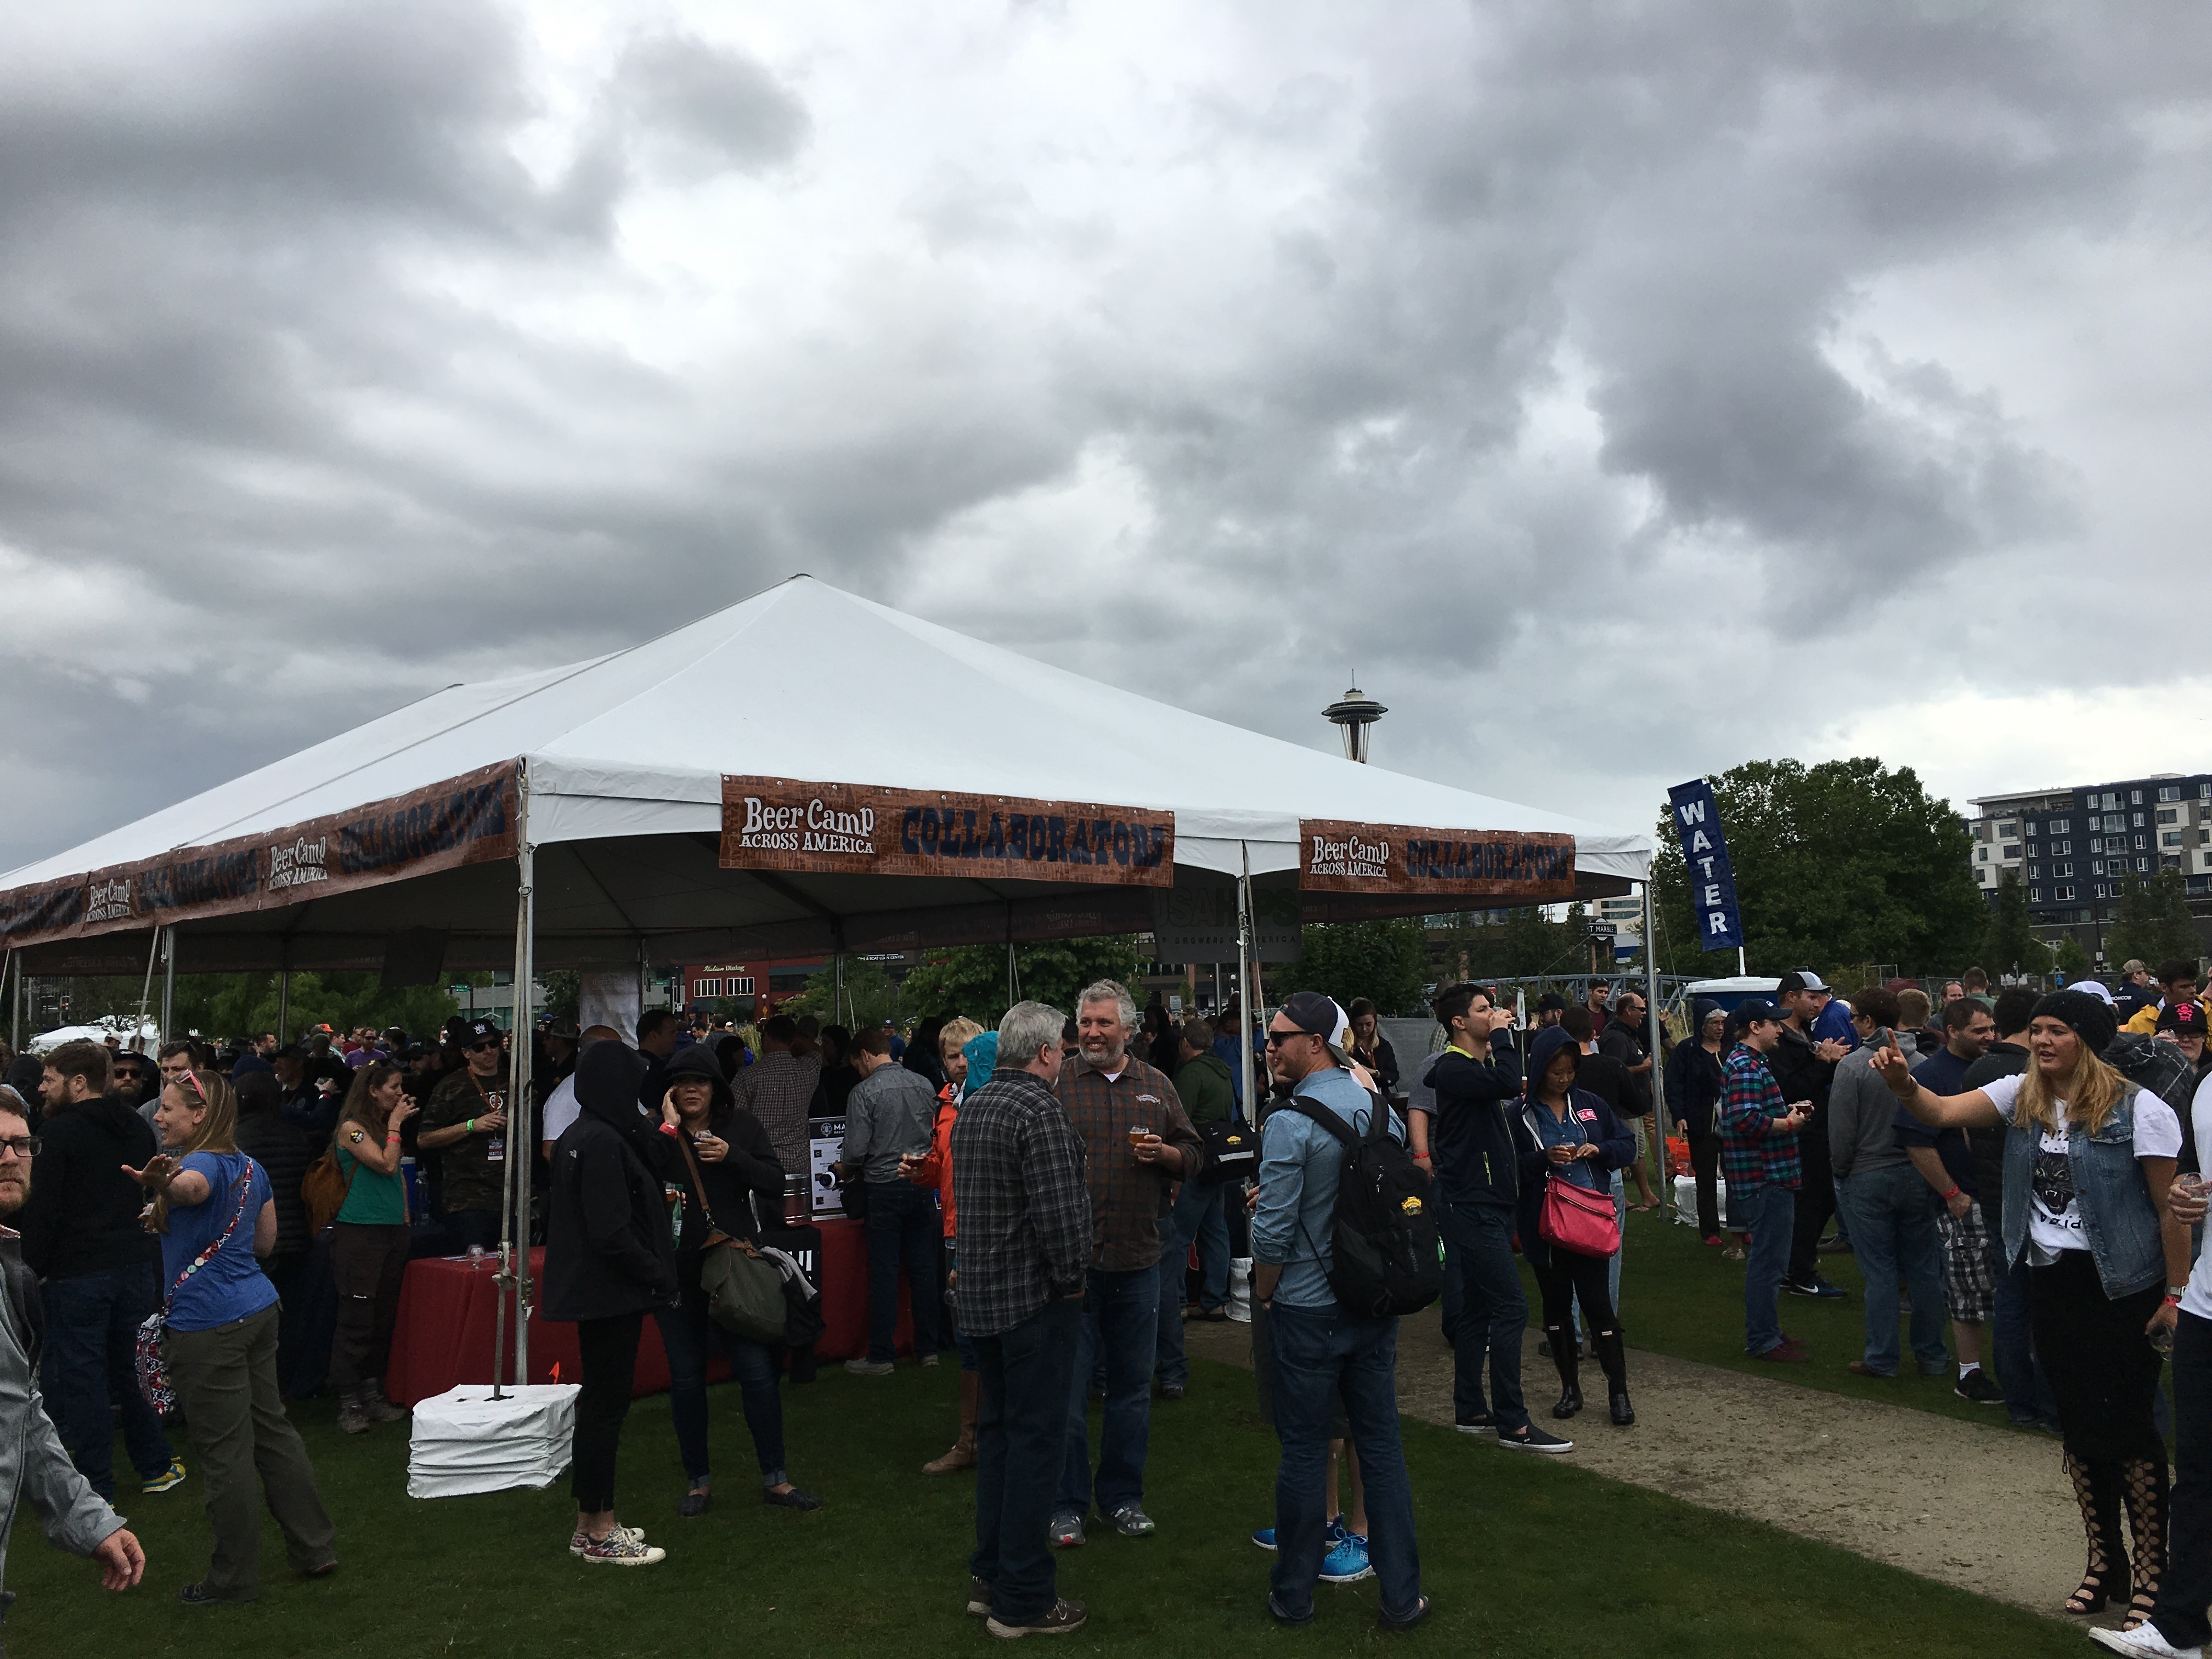 Clouds and then rain roll in towards the end of Sierra Nevada Beer Camp Across America Festival in Seattle. (photo by D.J. Paul)